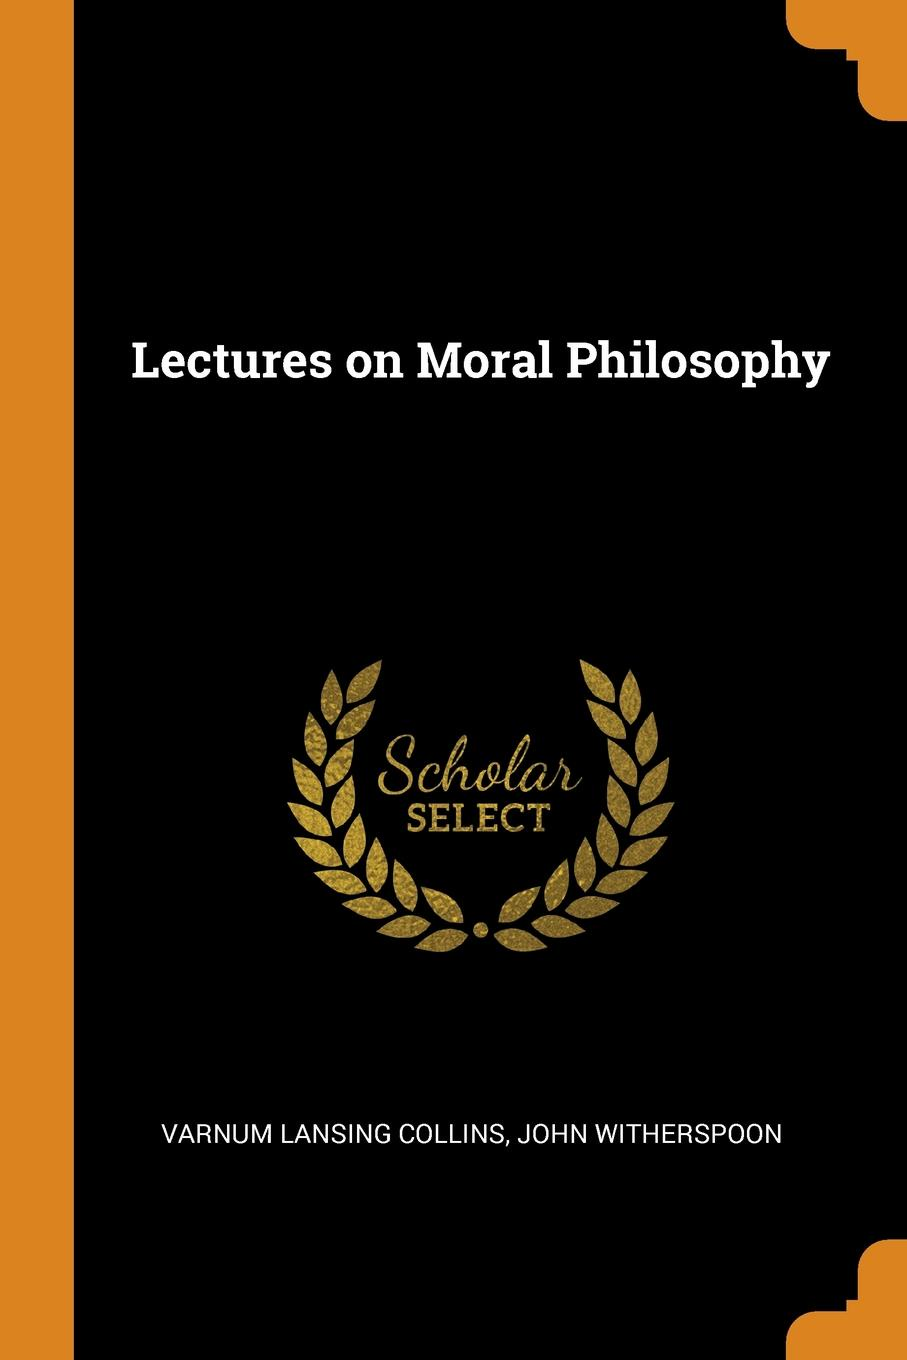 Lectures on Moral Philosophy